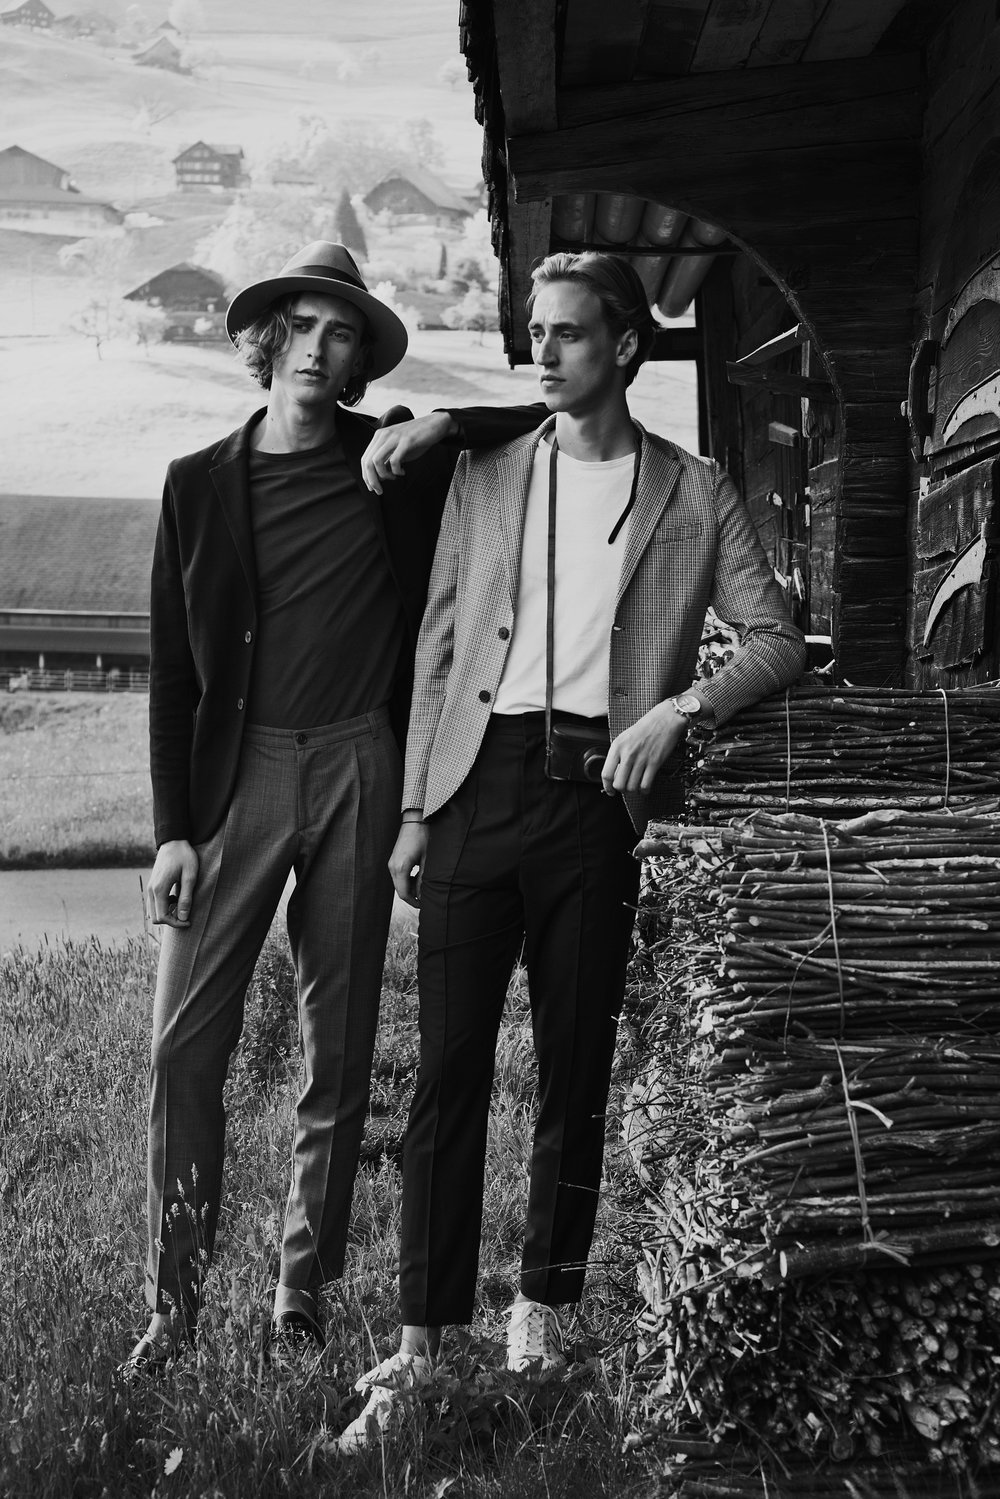 Oliver wears blazer by Harris Wharf, top by Asket, trousers by Fidelio, loafers by Gucci and hat by Stetson. Moritz wears blazer by Harris Wharf, his own top, trousers by Plac and sneakers by Bally.